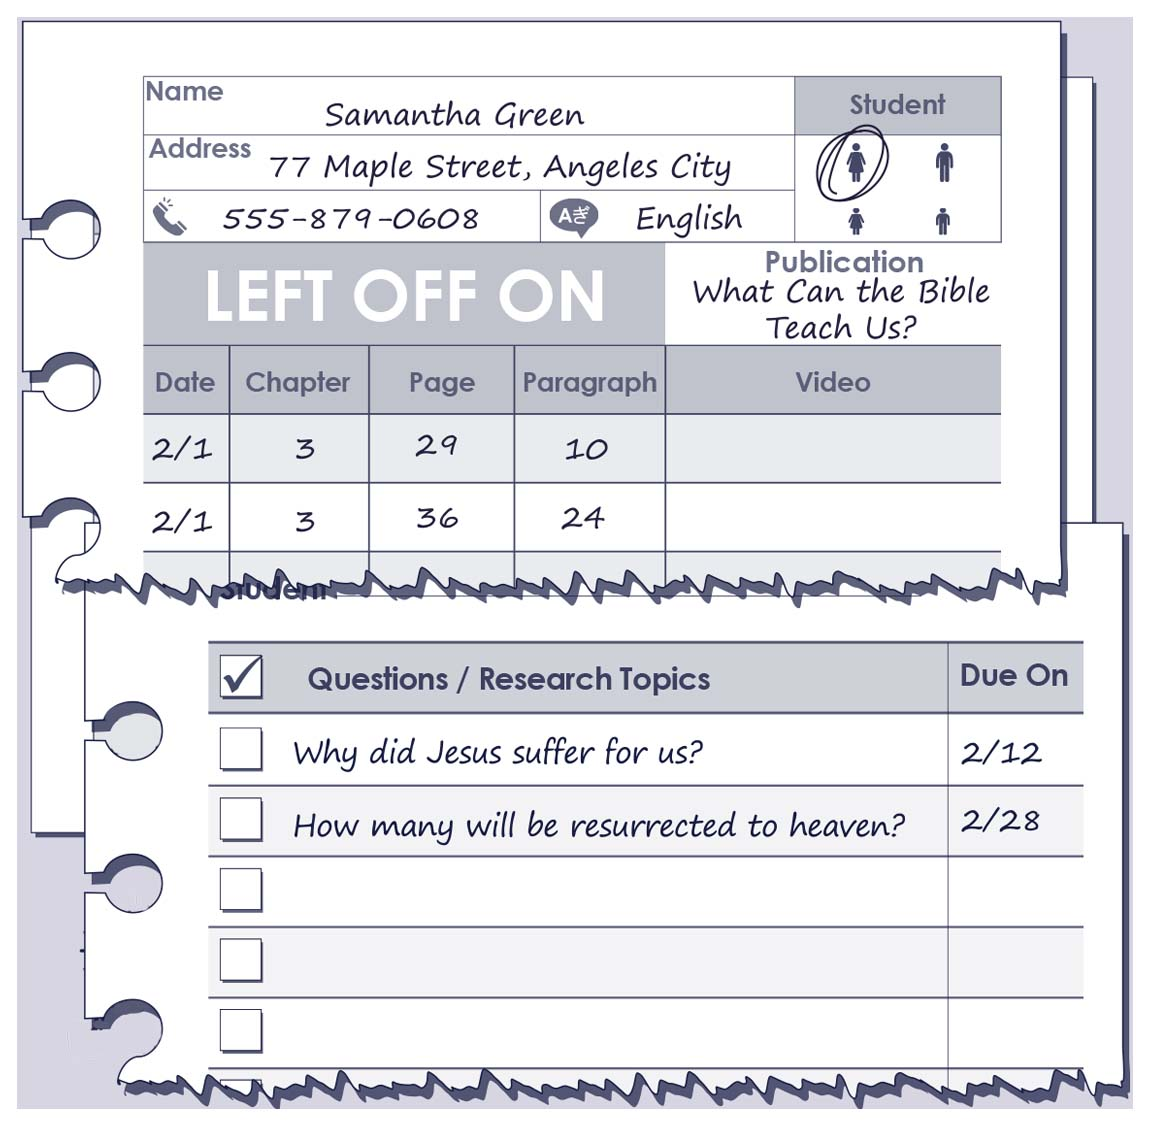 Return Visit and Service Record book for Jehovah's Witnesses